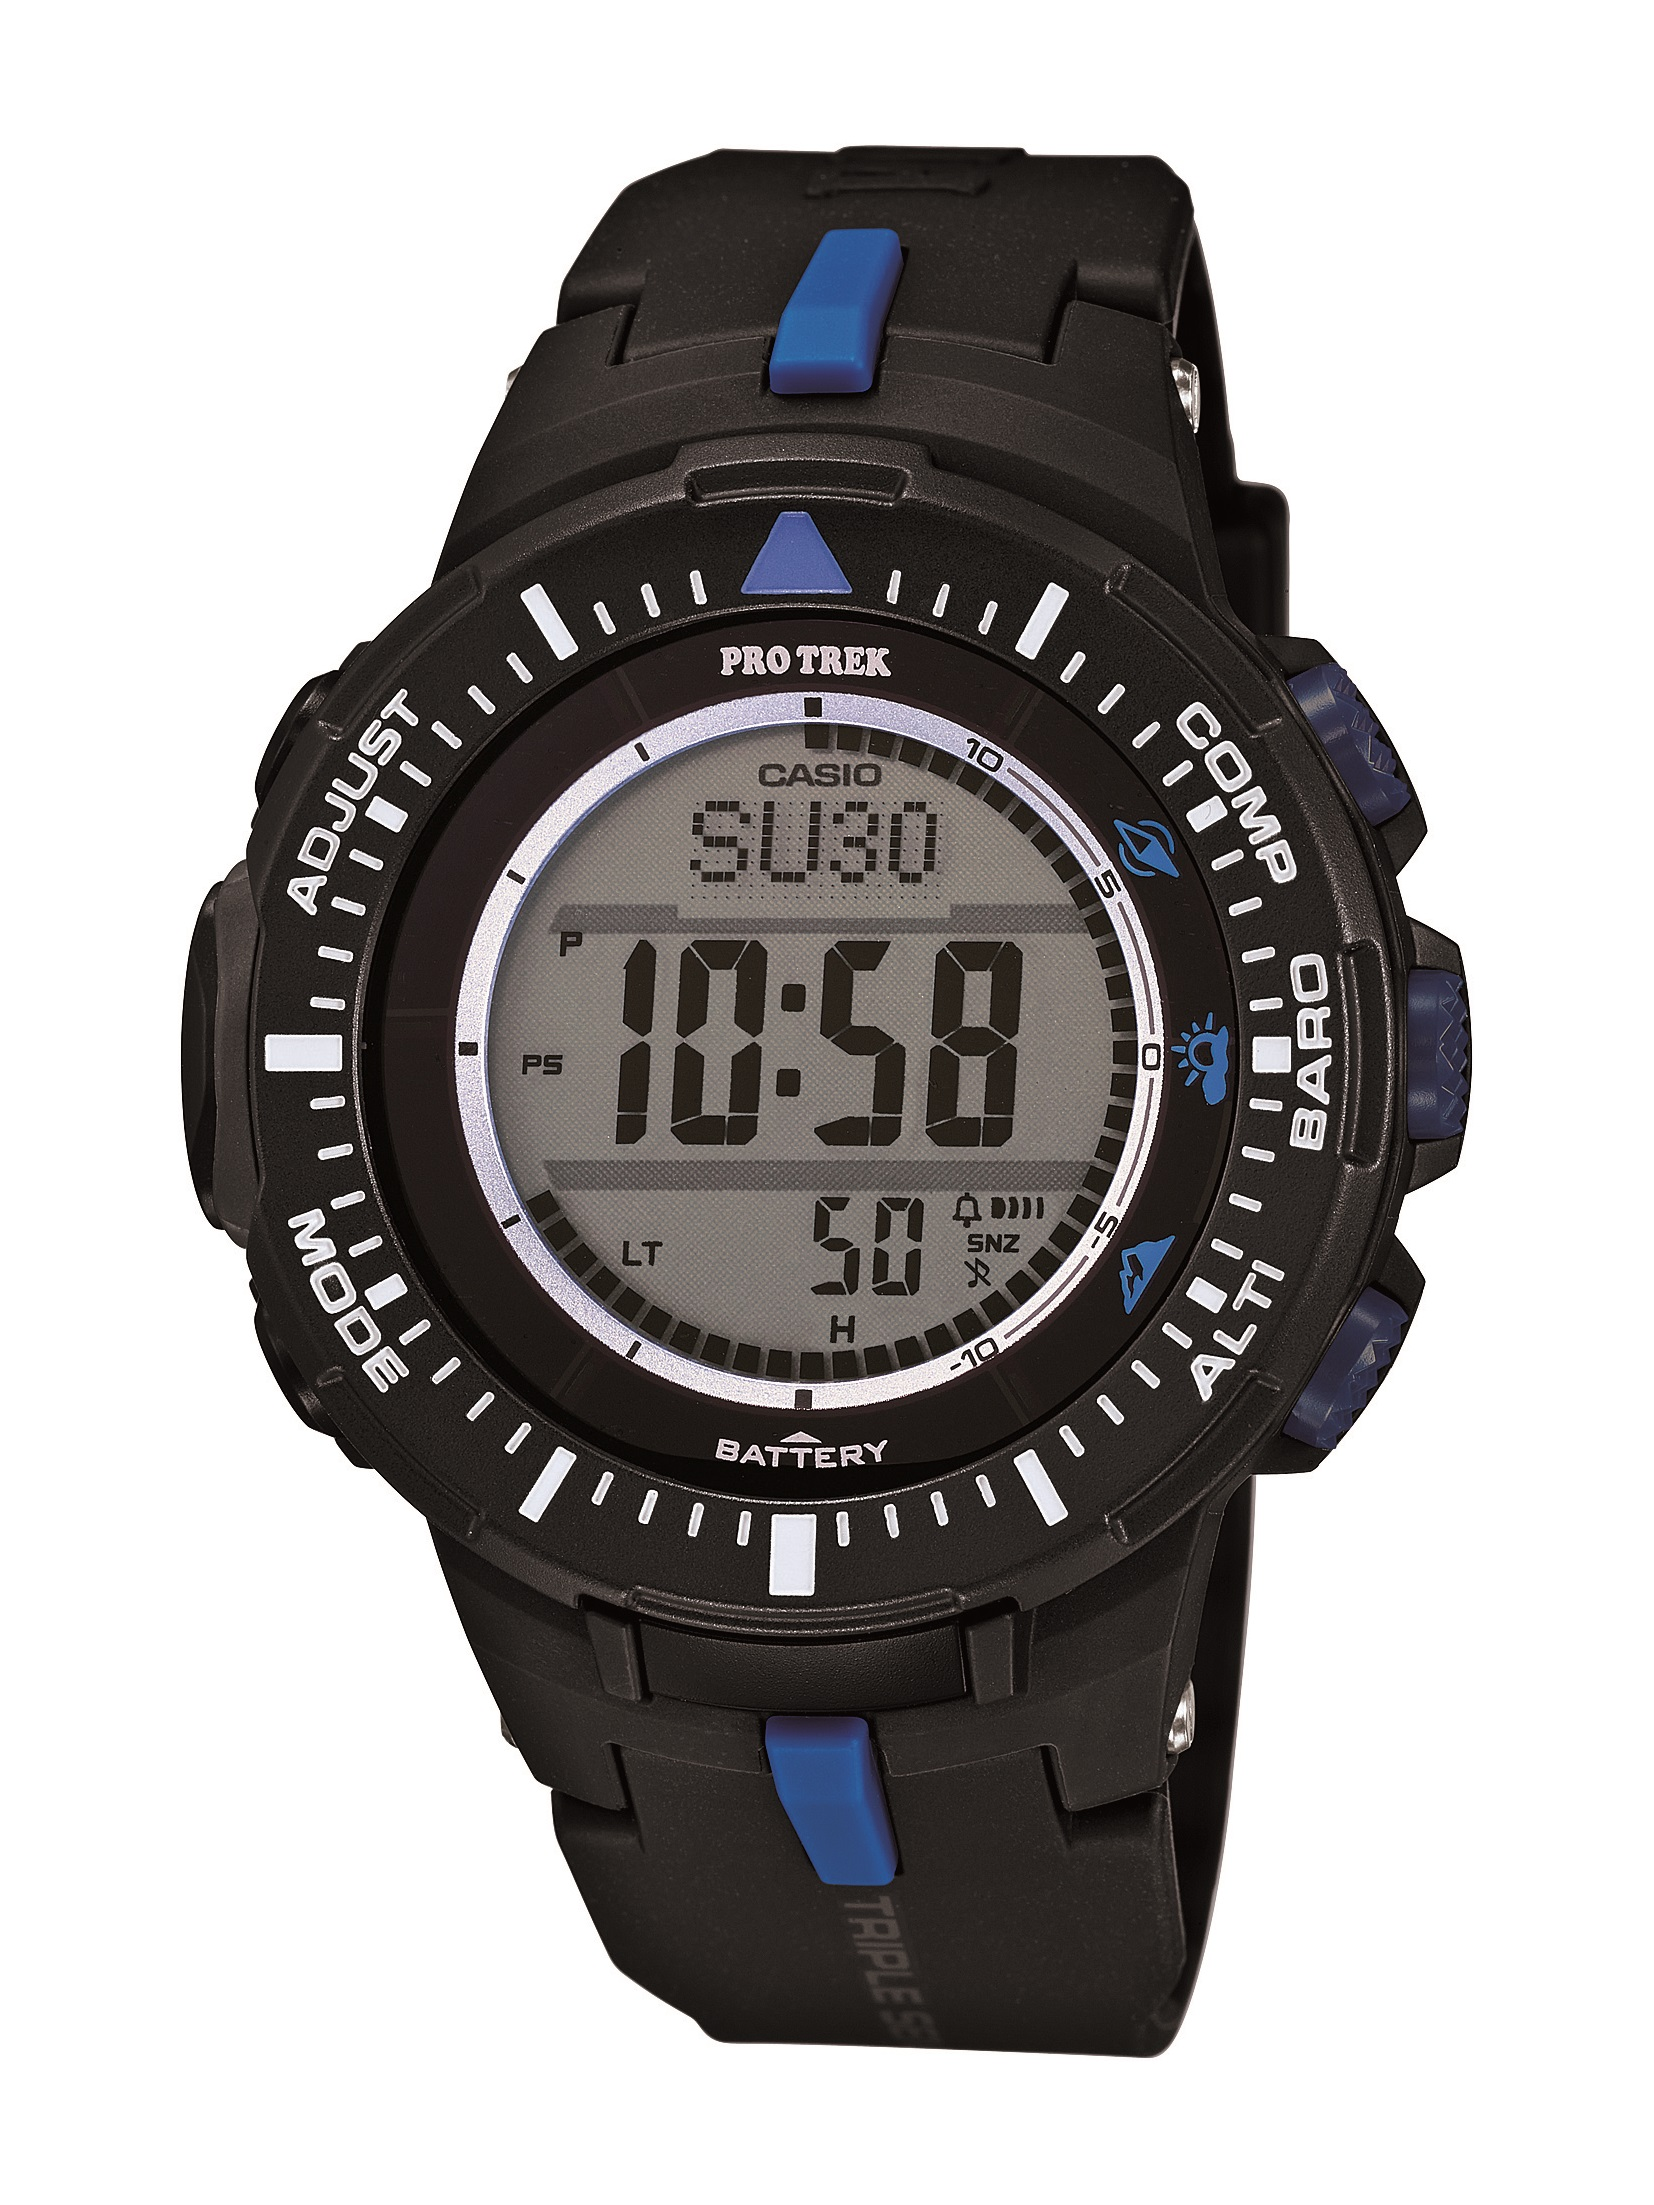 [Official] Casio Tackles the Great Outdoors with New Pro Trek Timepiece